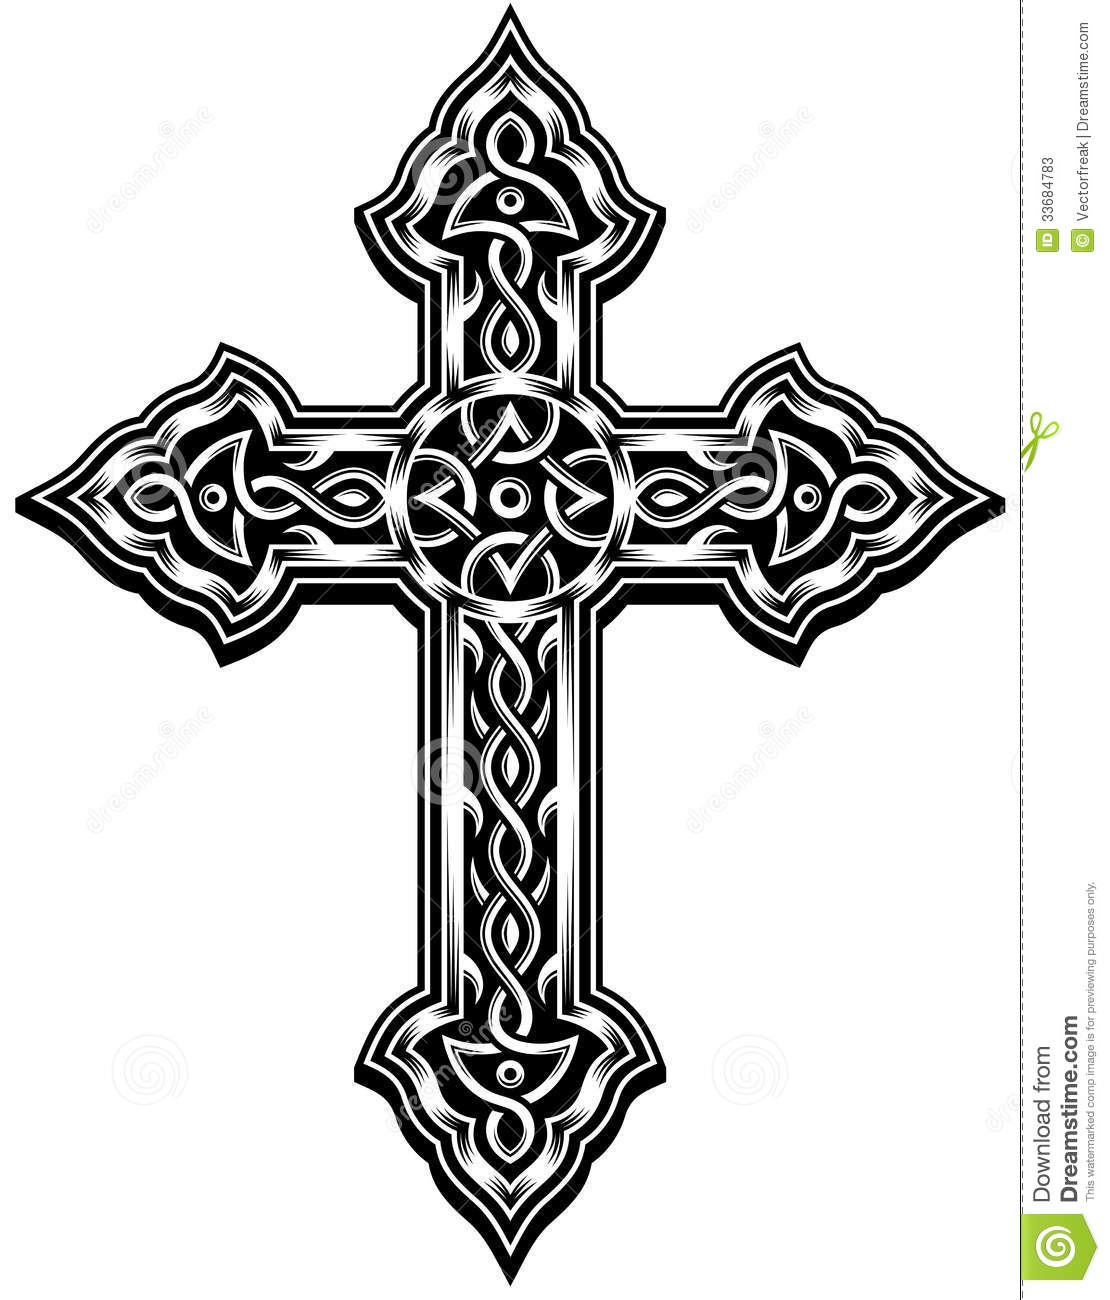 Ornate Cross Vector Stock Photos